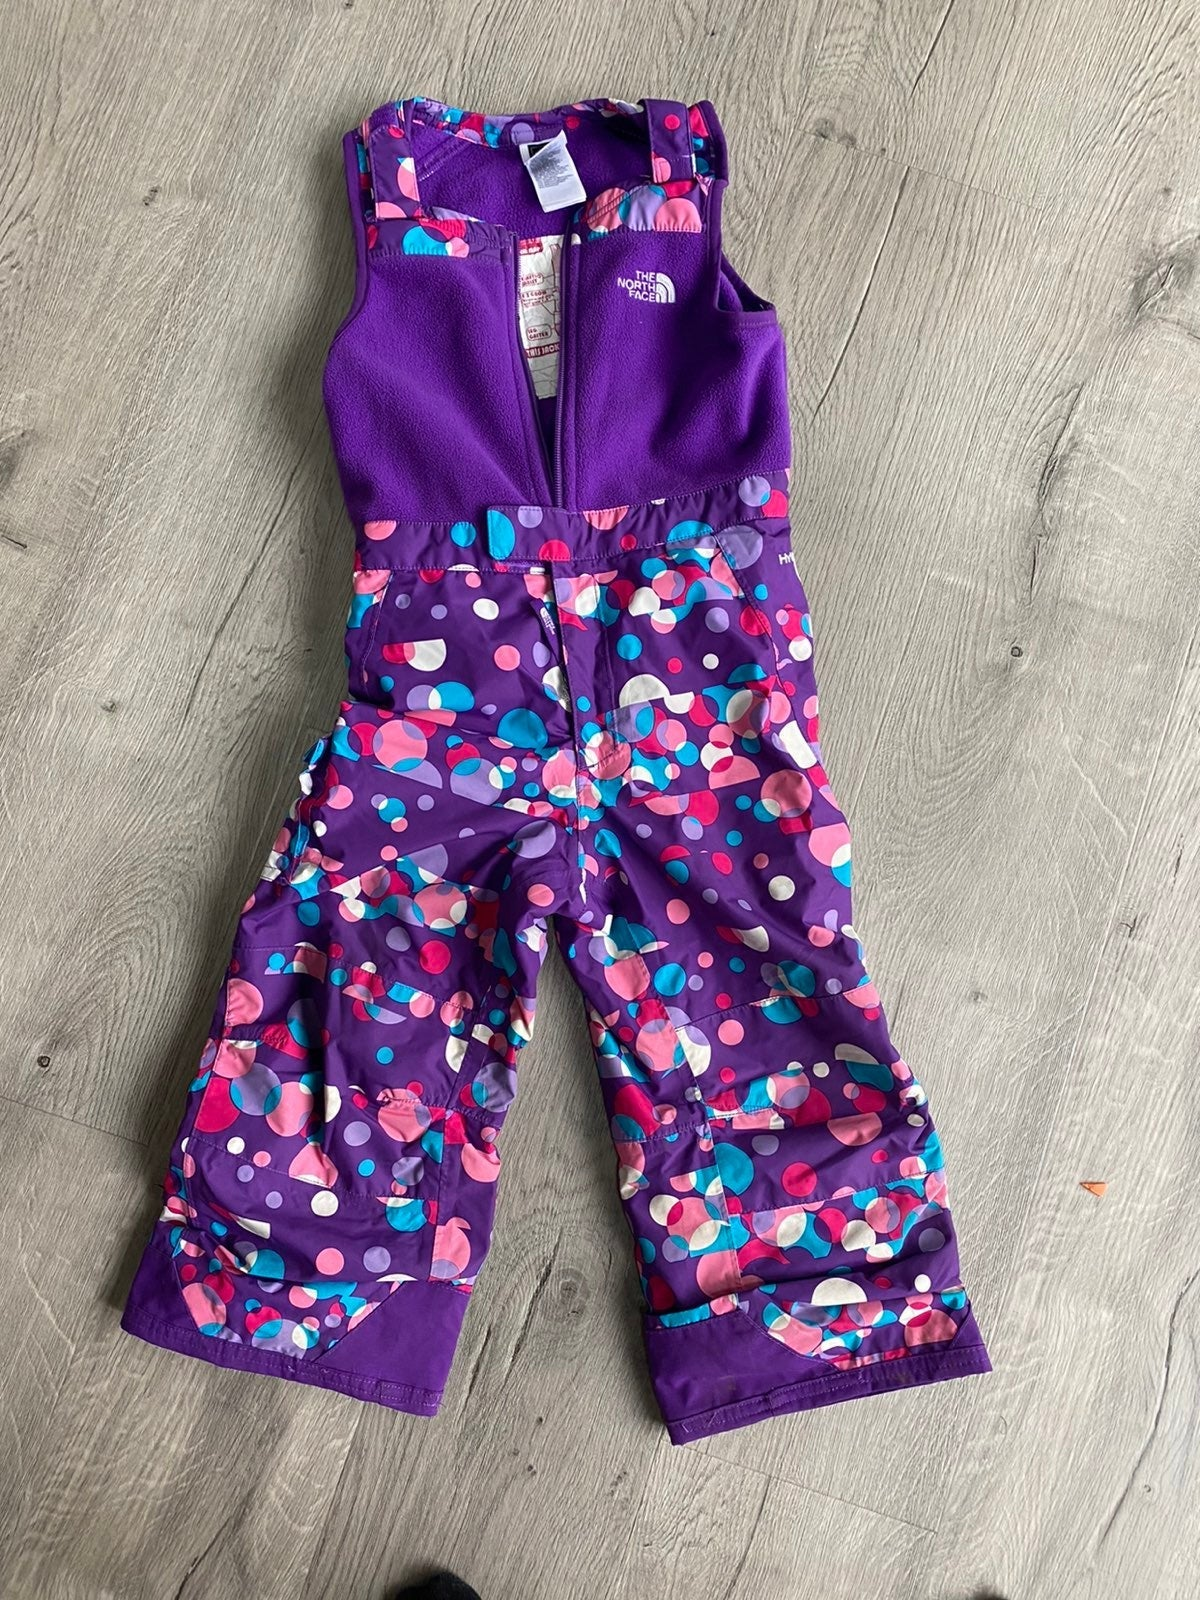 North face girls snow/ski bib